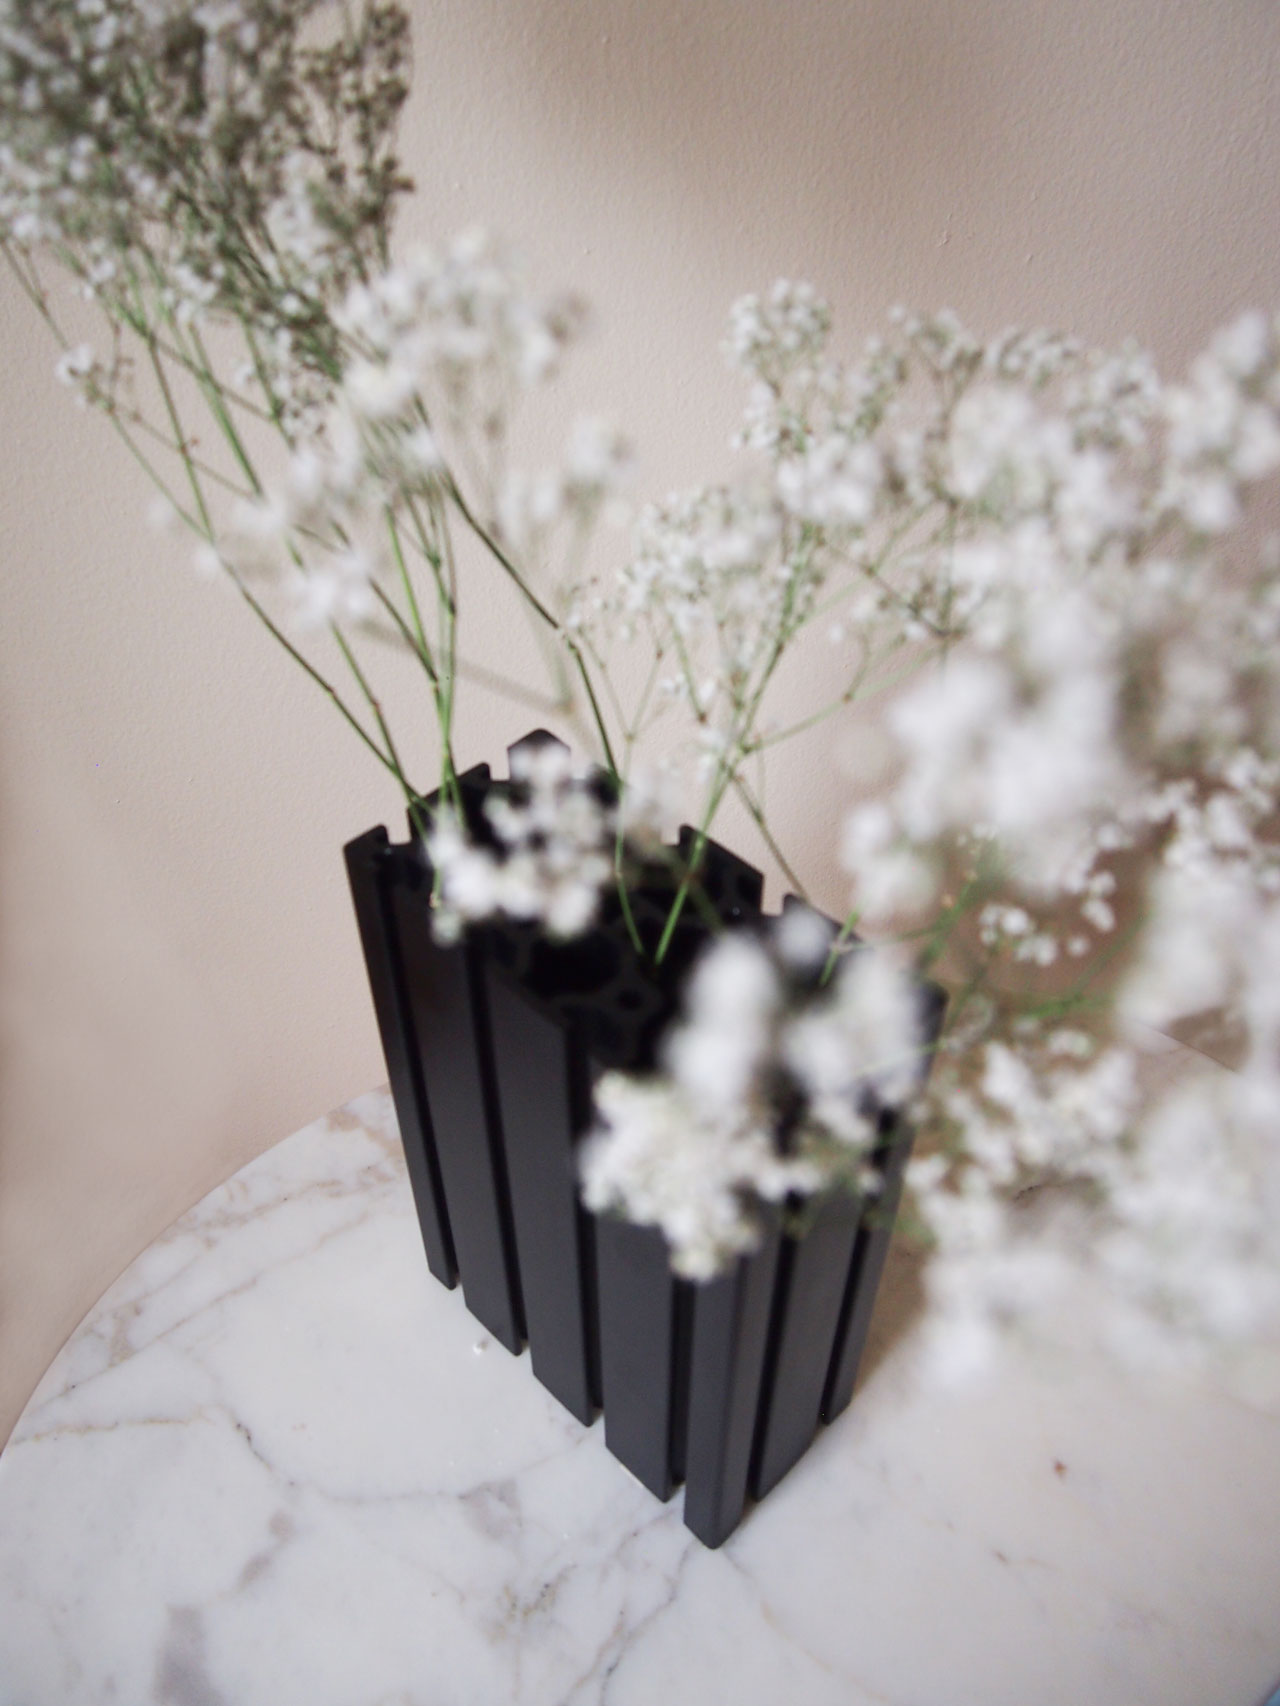 DIY extrusion vase designed by Aandersson